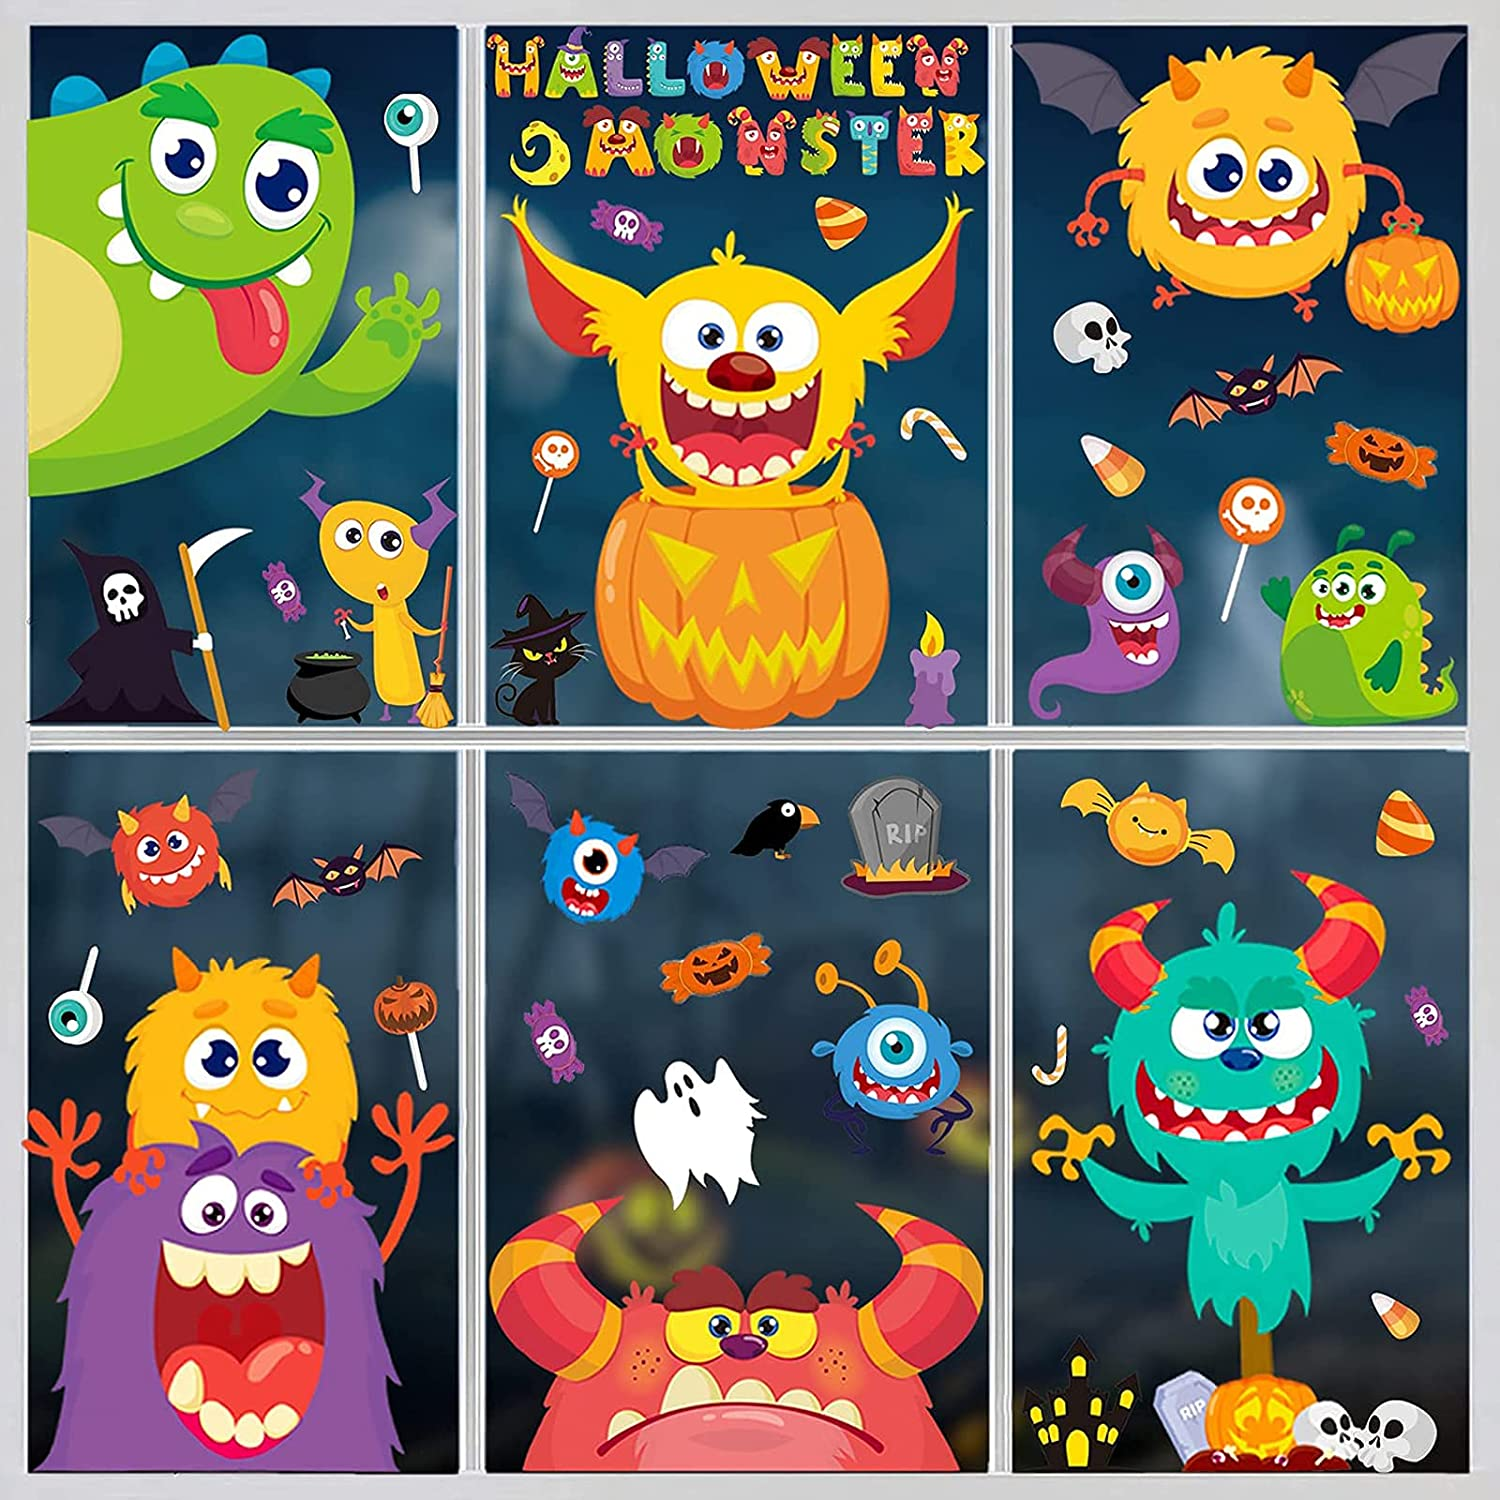 Max 81% OFF DERAYEE Halloween Window Clings Monster Large Sticker Fort Worth Mall